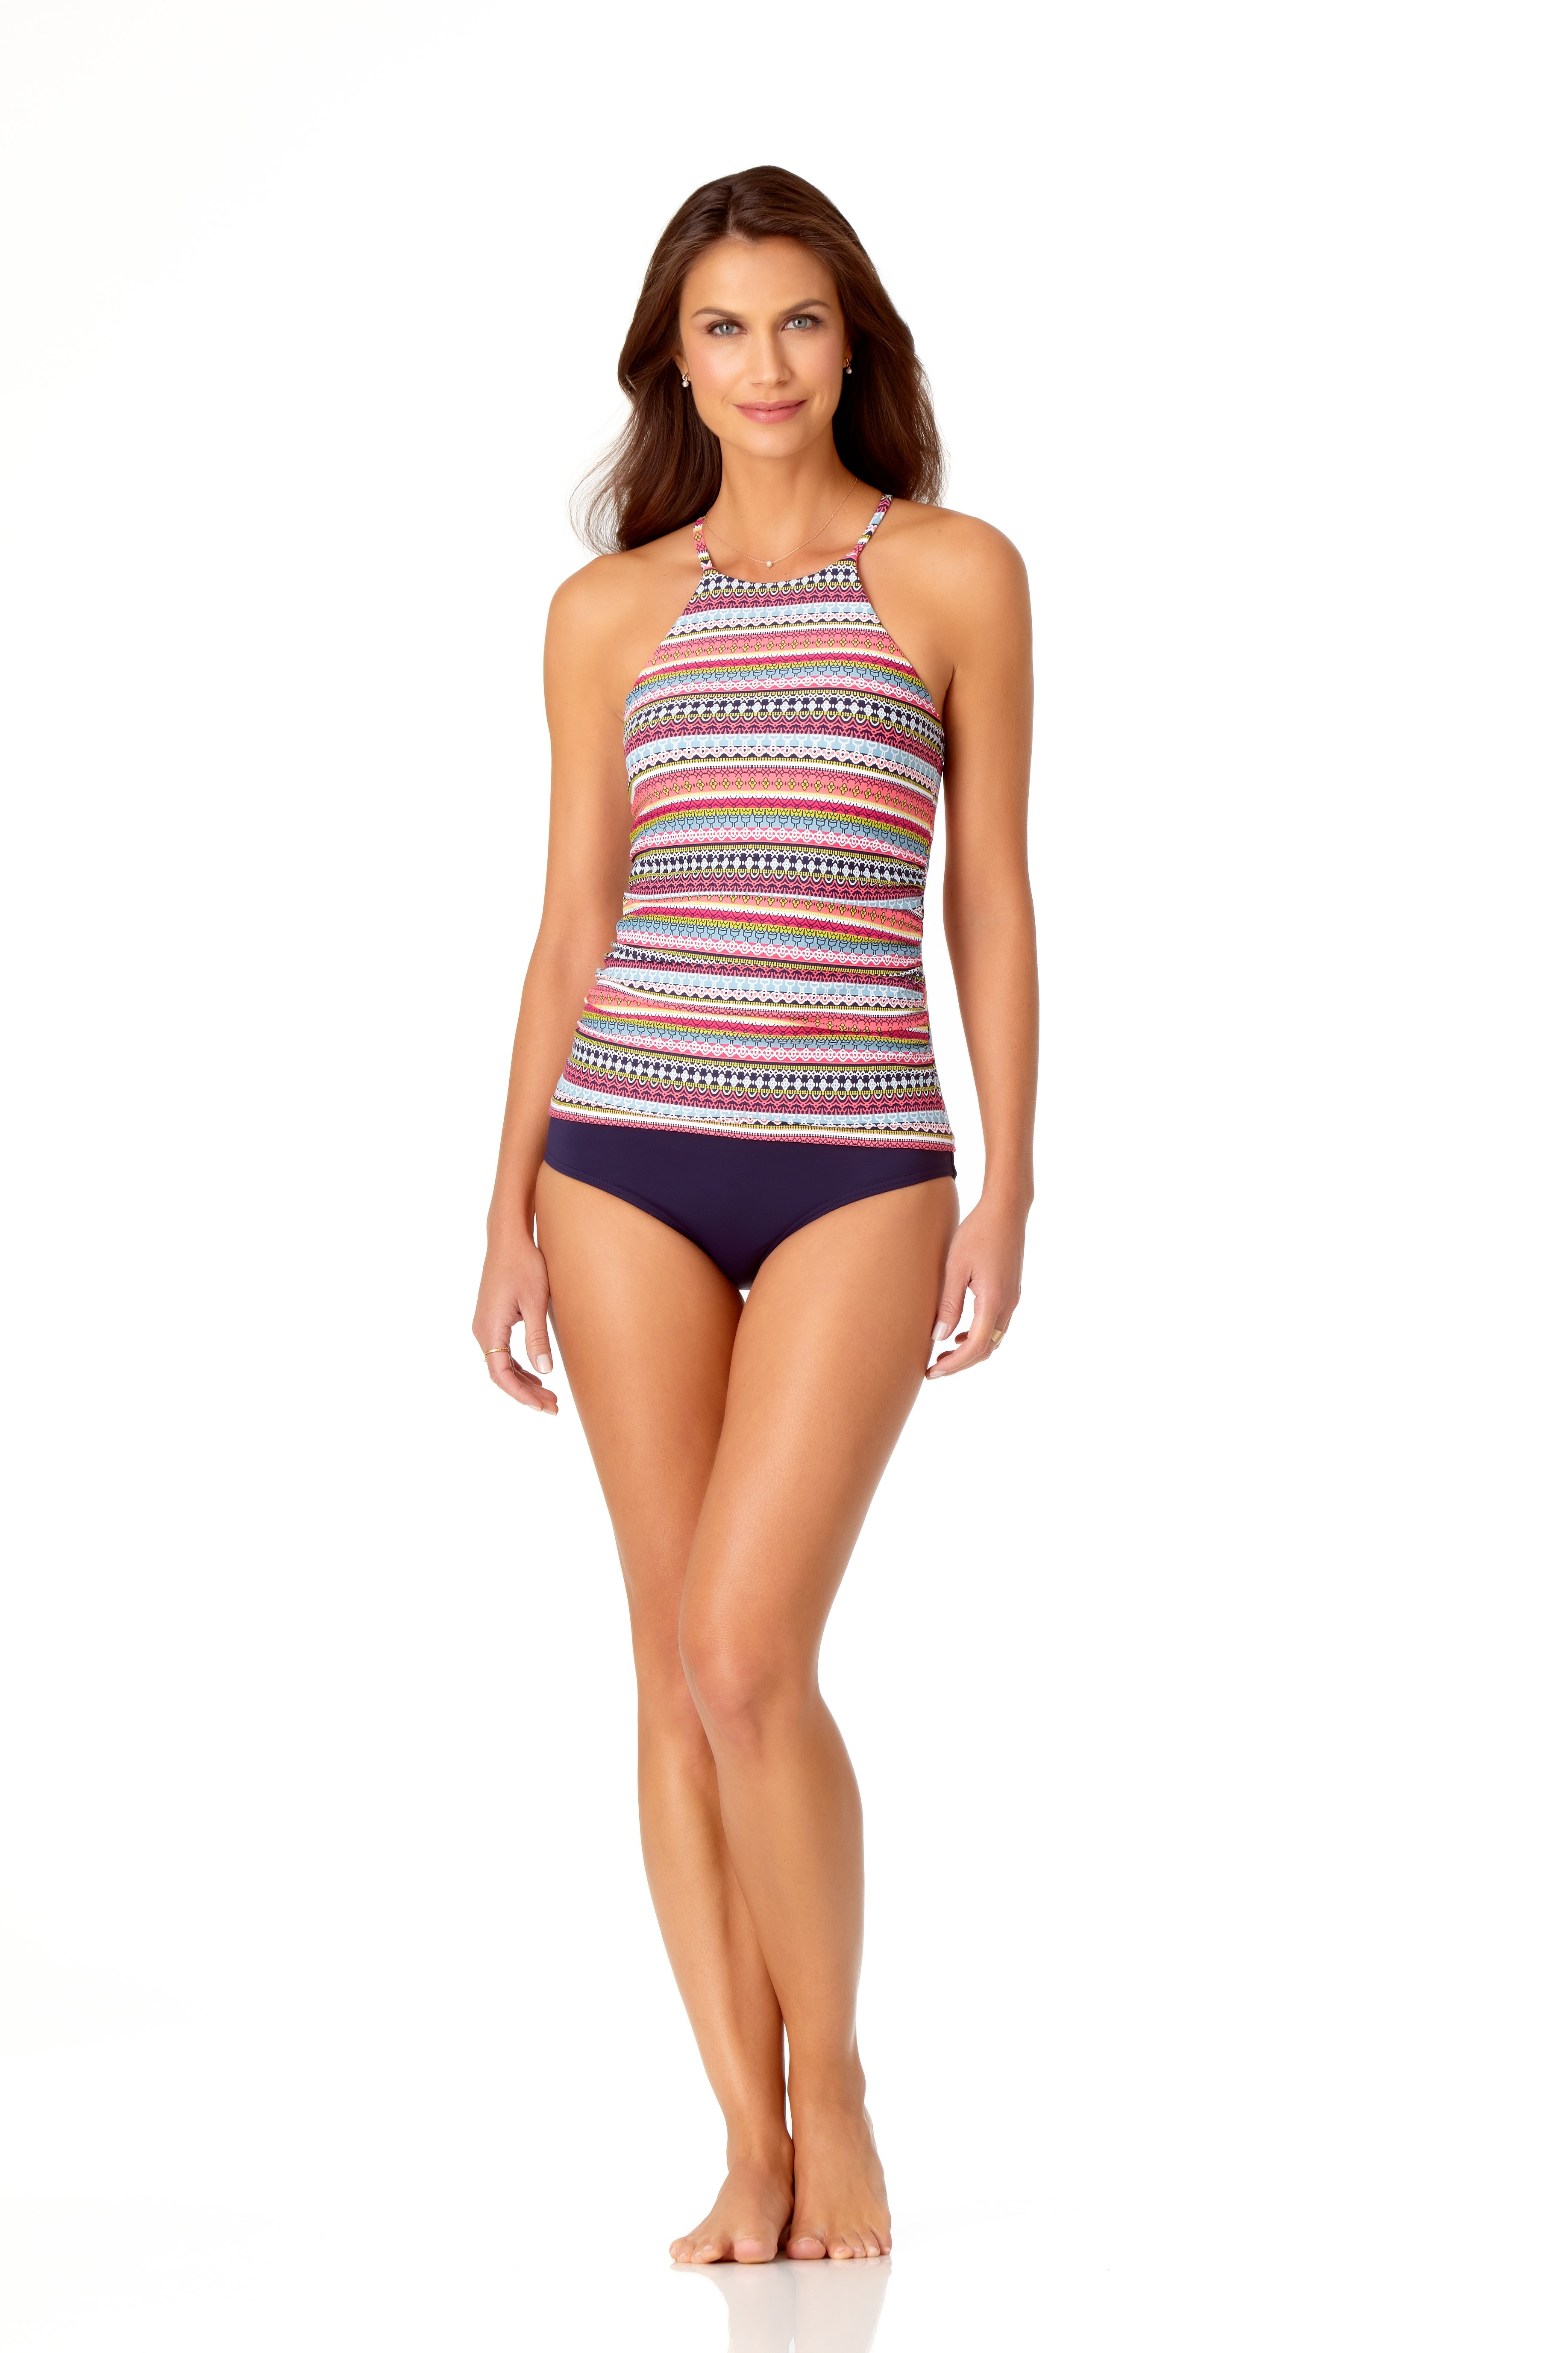 Anne Cole® Jet Set Stripe High Neck Tankini Swimsuit Top -Multi - Front